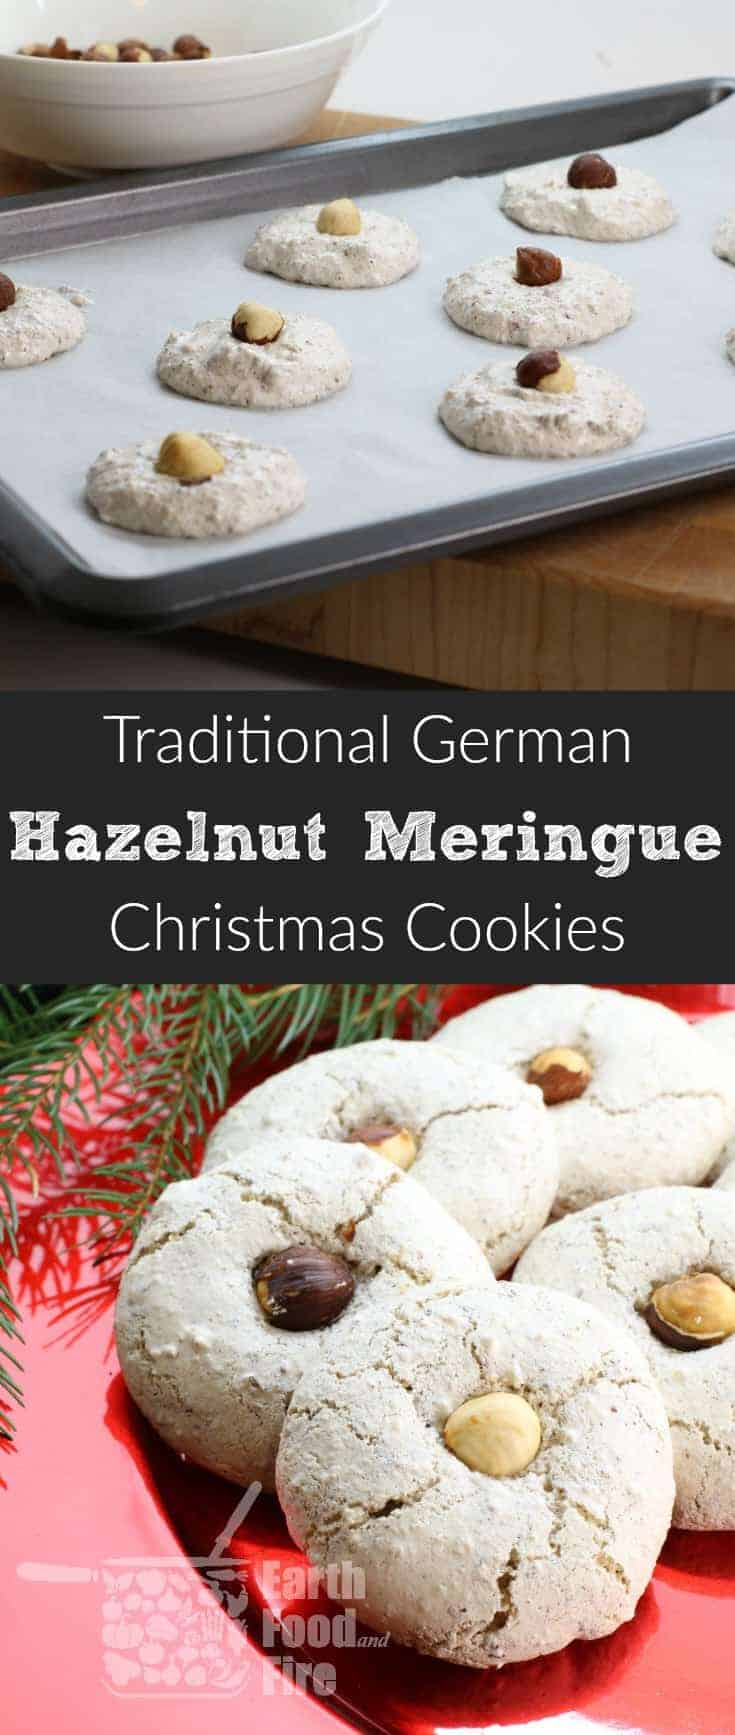 These German Hazelnut Meringue Cookies are light and oh so delicious! Perfect for the holidays and they only take half an hour to make! #hazelnut #cookies #christmas #baking #german #glutenfree